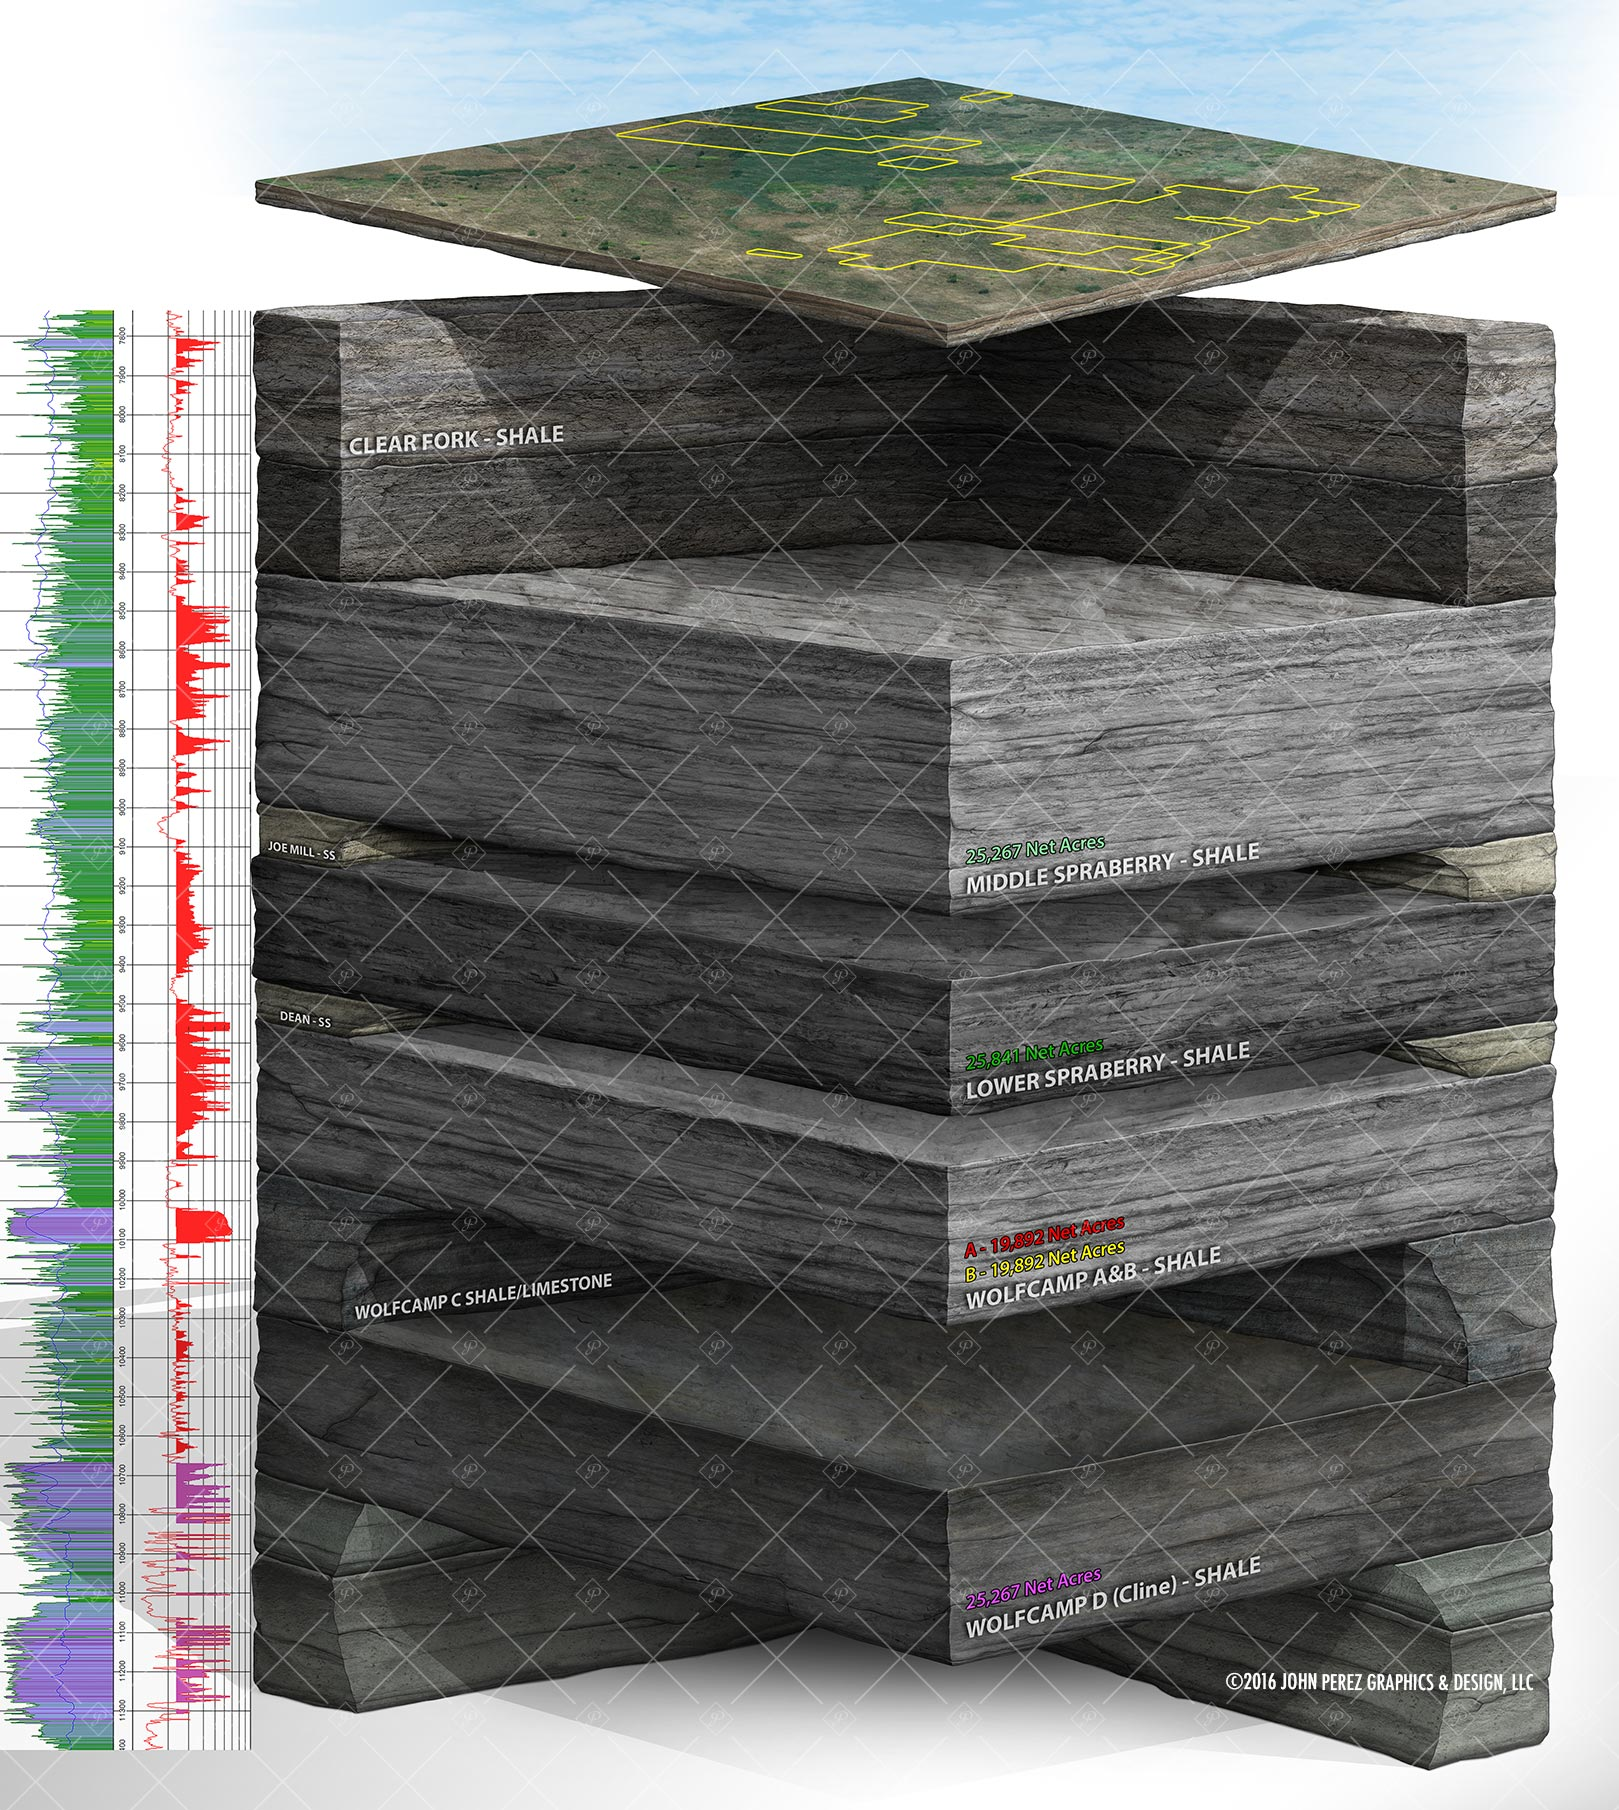 Permian Basin Stacked Pay Schematic, oil and gas graphics, oil and gas schematics